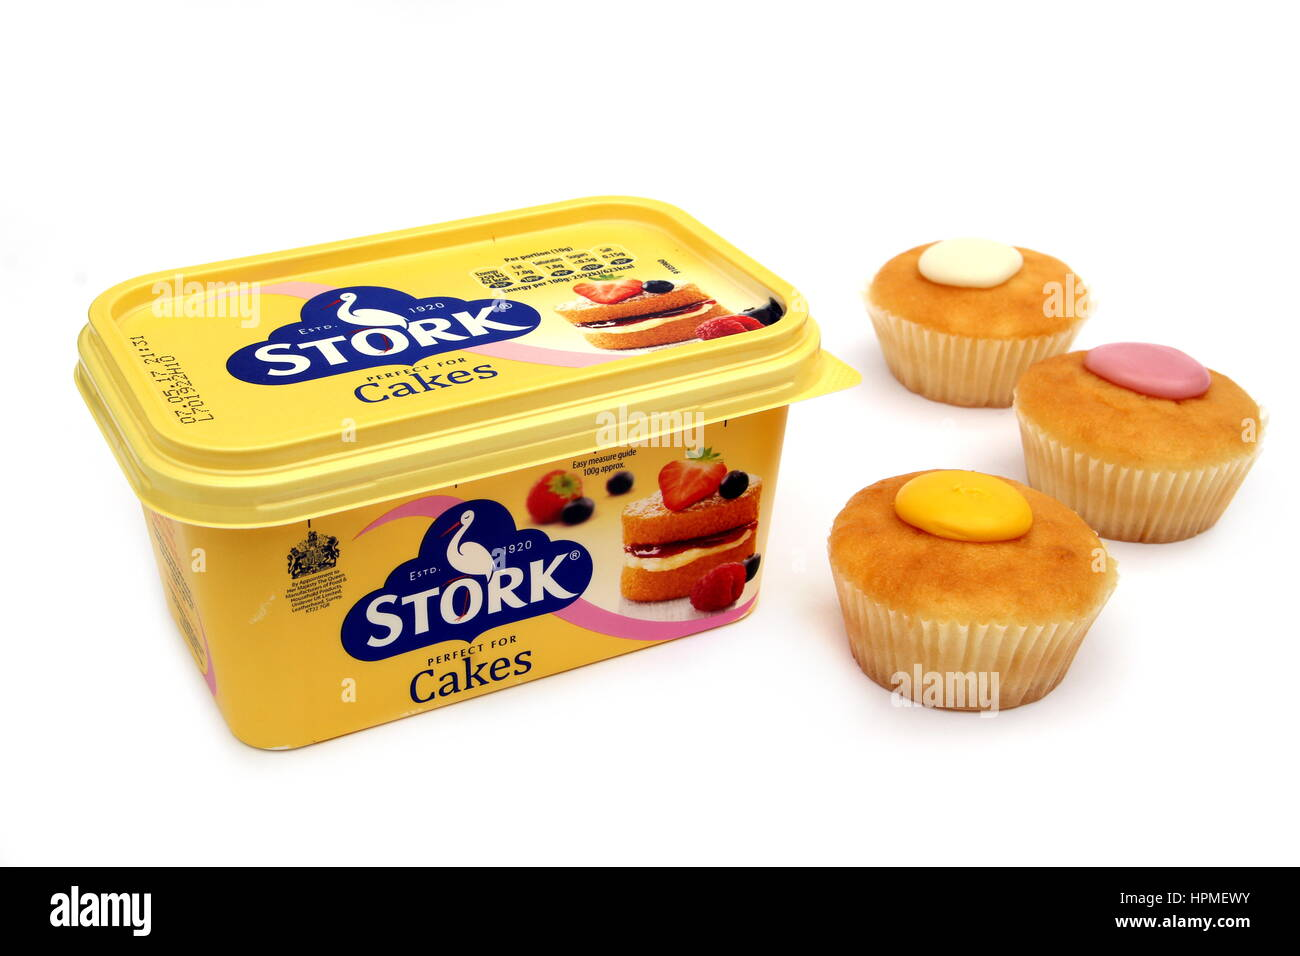 Is Stork For Cakes Dairy Free